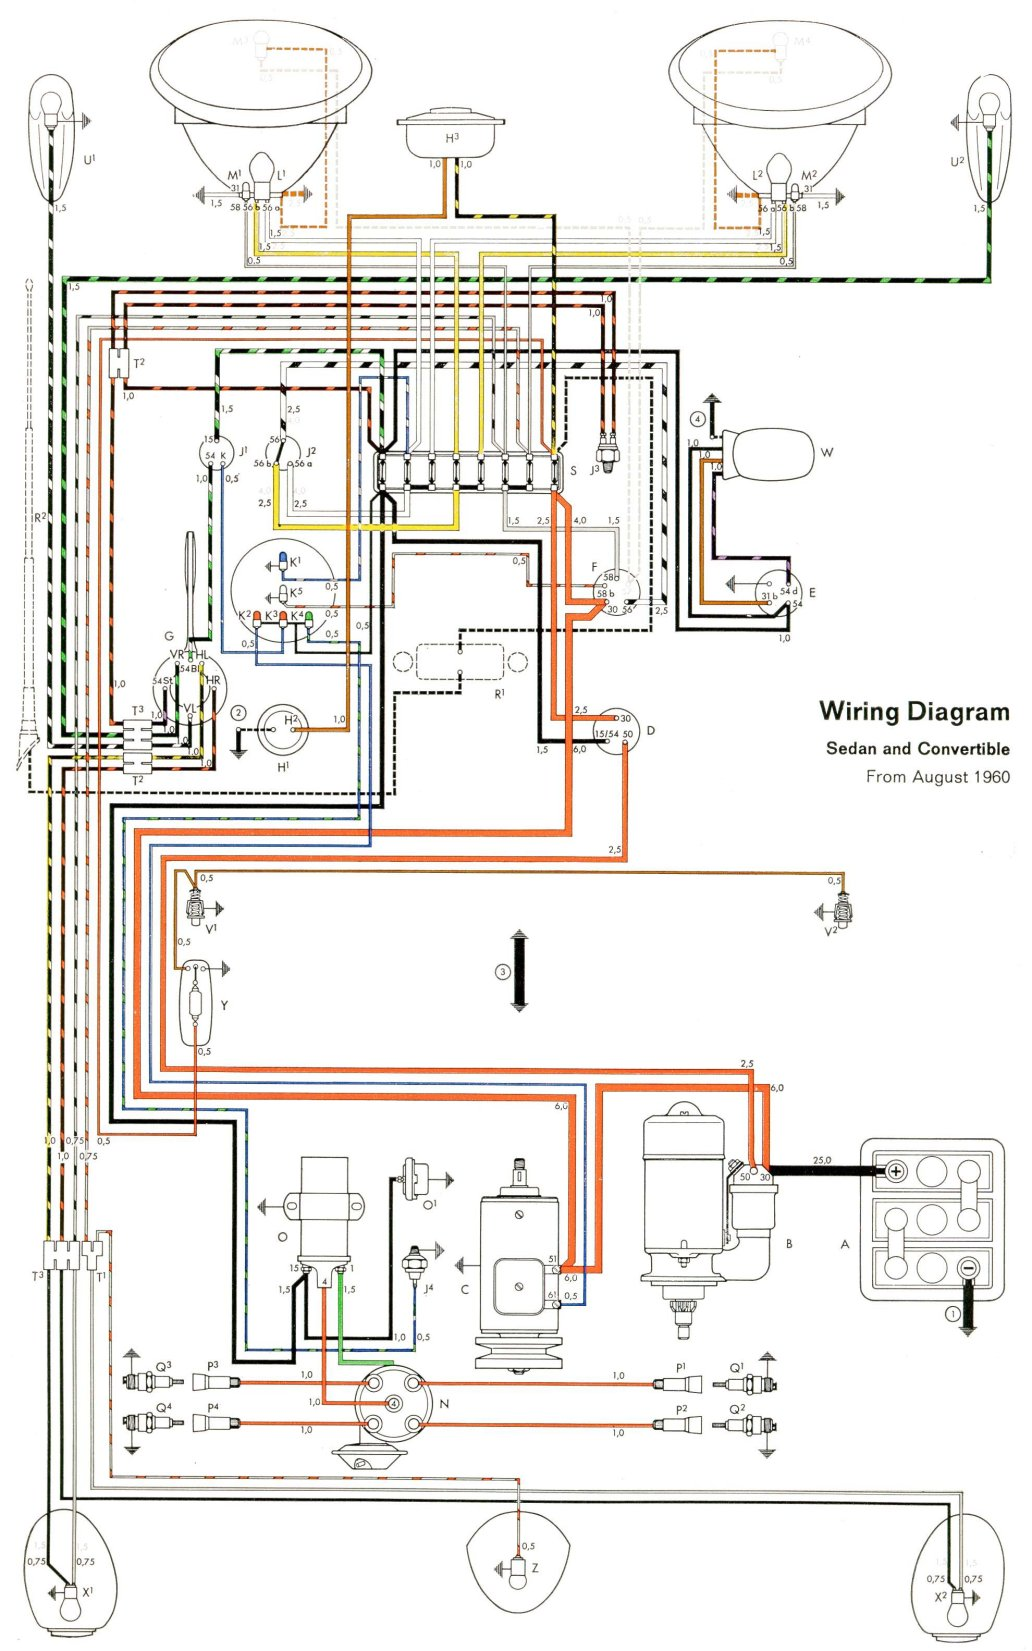 bug_61 thesamba com type 1 wiring diagrams 74 vw bus wiring diagram at nearapp.co